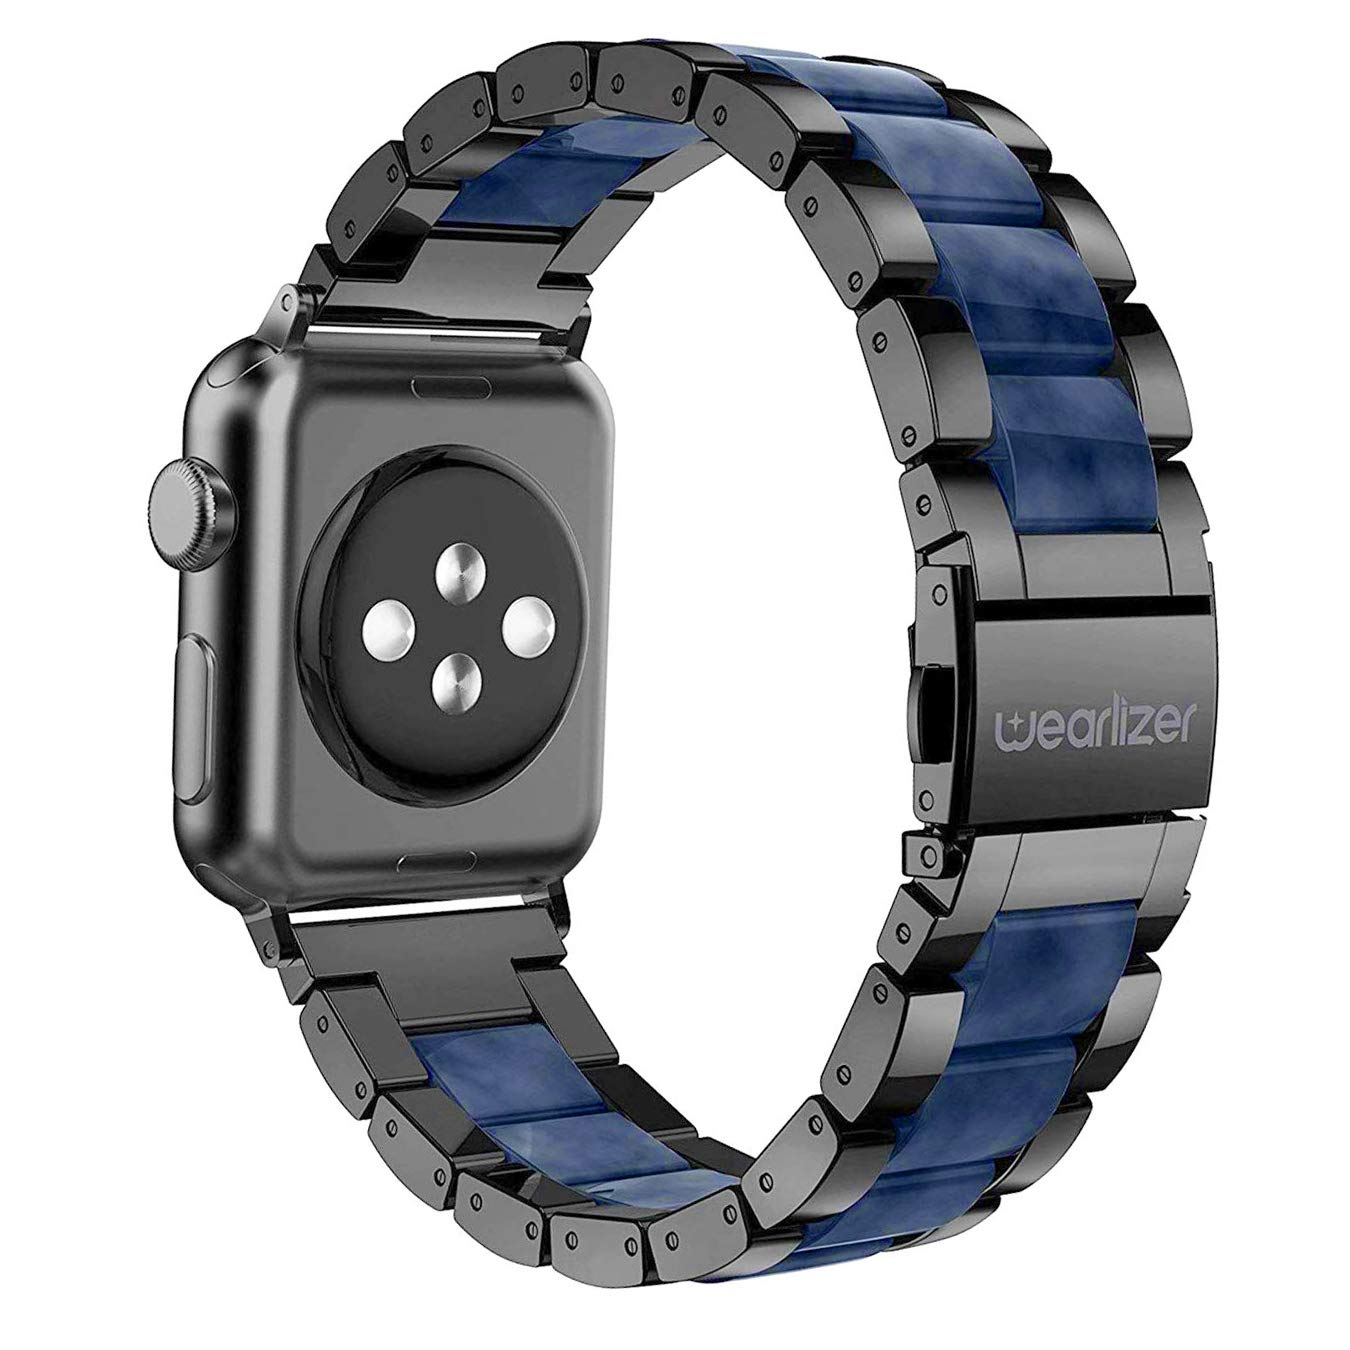 Wearlizer Black Blue Bands Compatible with Apple Watch Straps 42mm 44mm iWatch Mens Womens Replacement Lightweight Central Resin with Stainless Steel Edge Wristbands Strap Bracelet Series 4 3 2 1 by Wearlizer